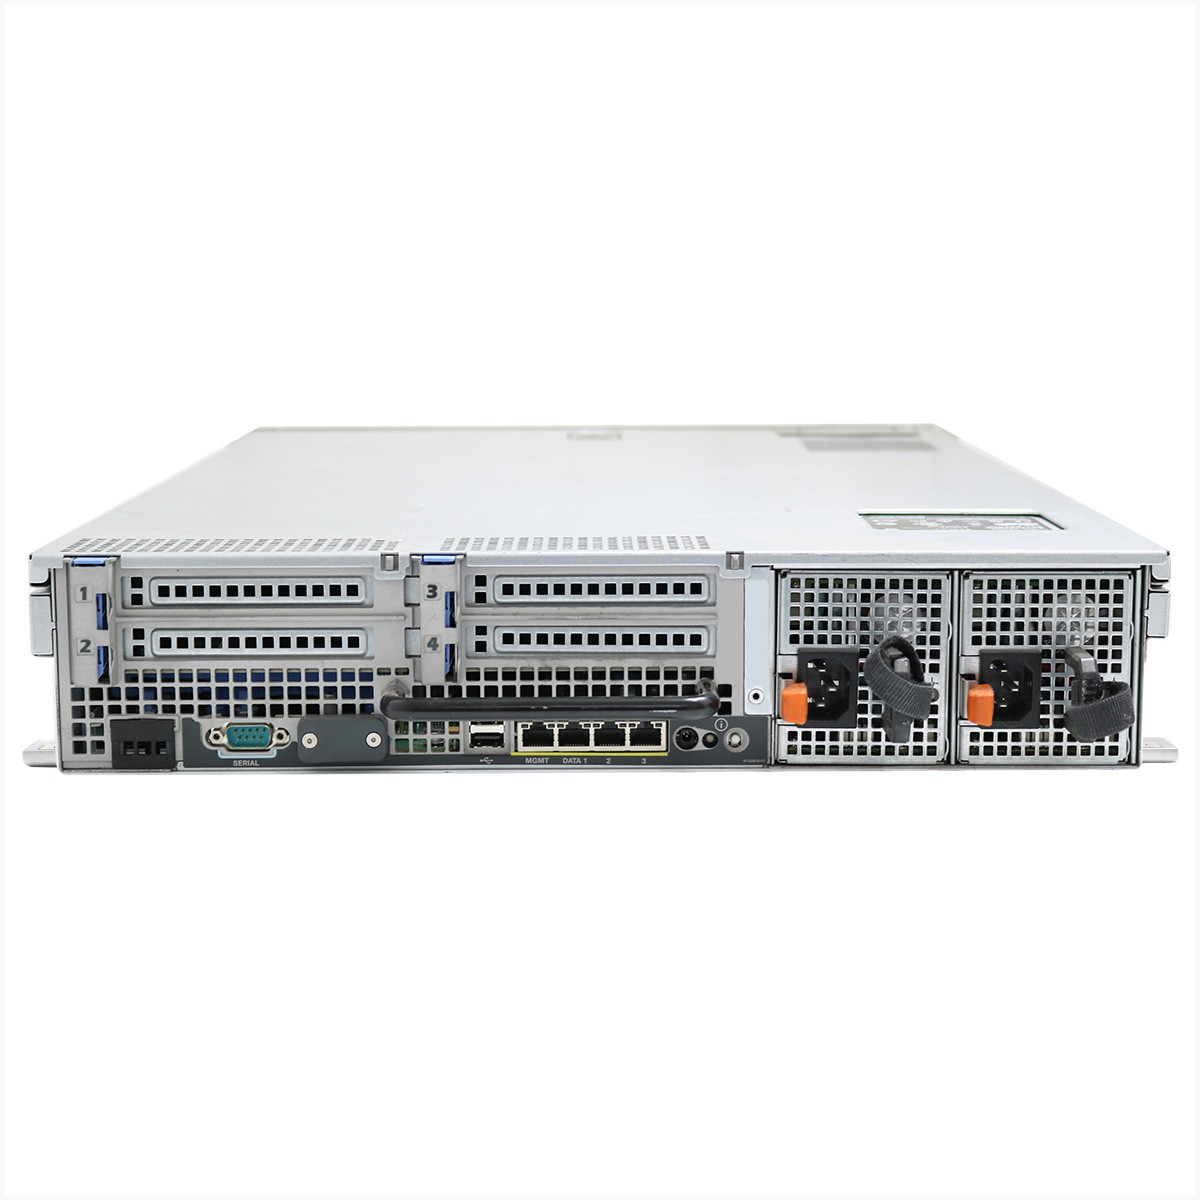 Appliance firewall cisco c370 - usado